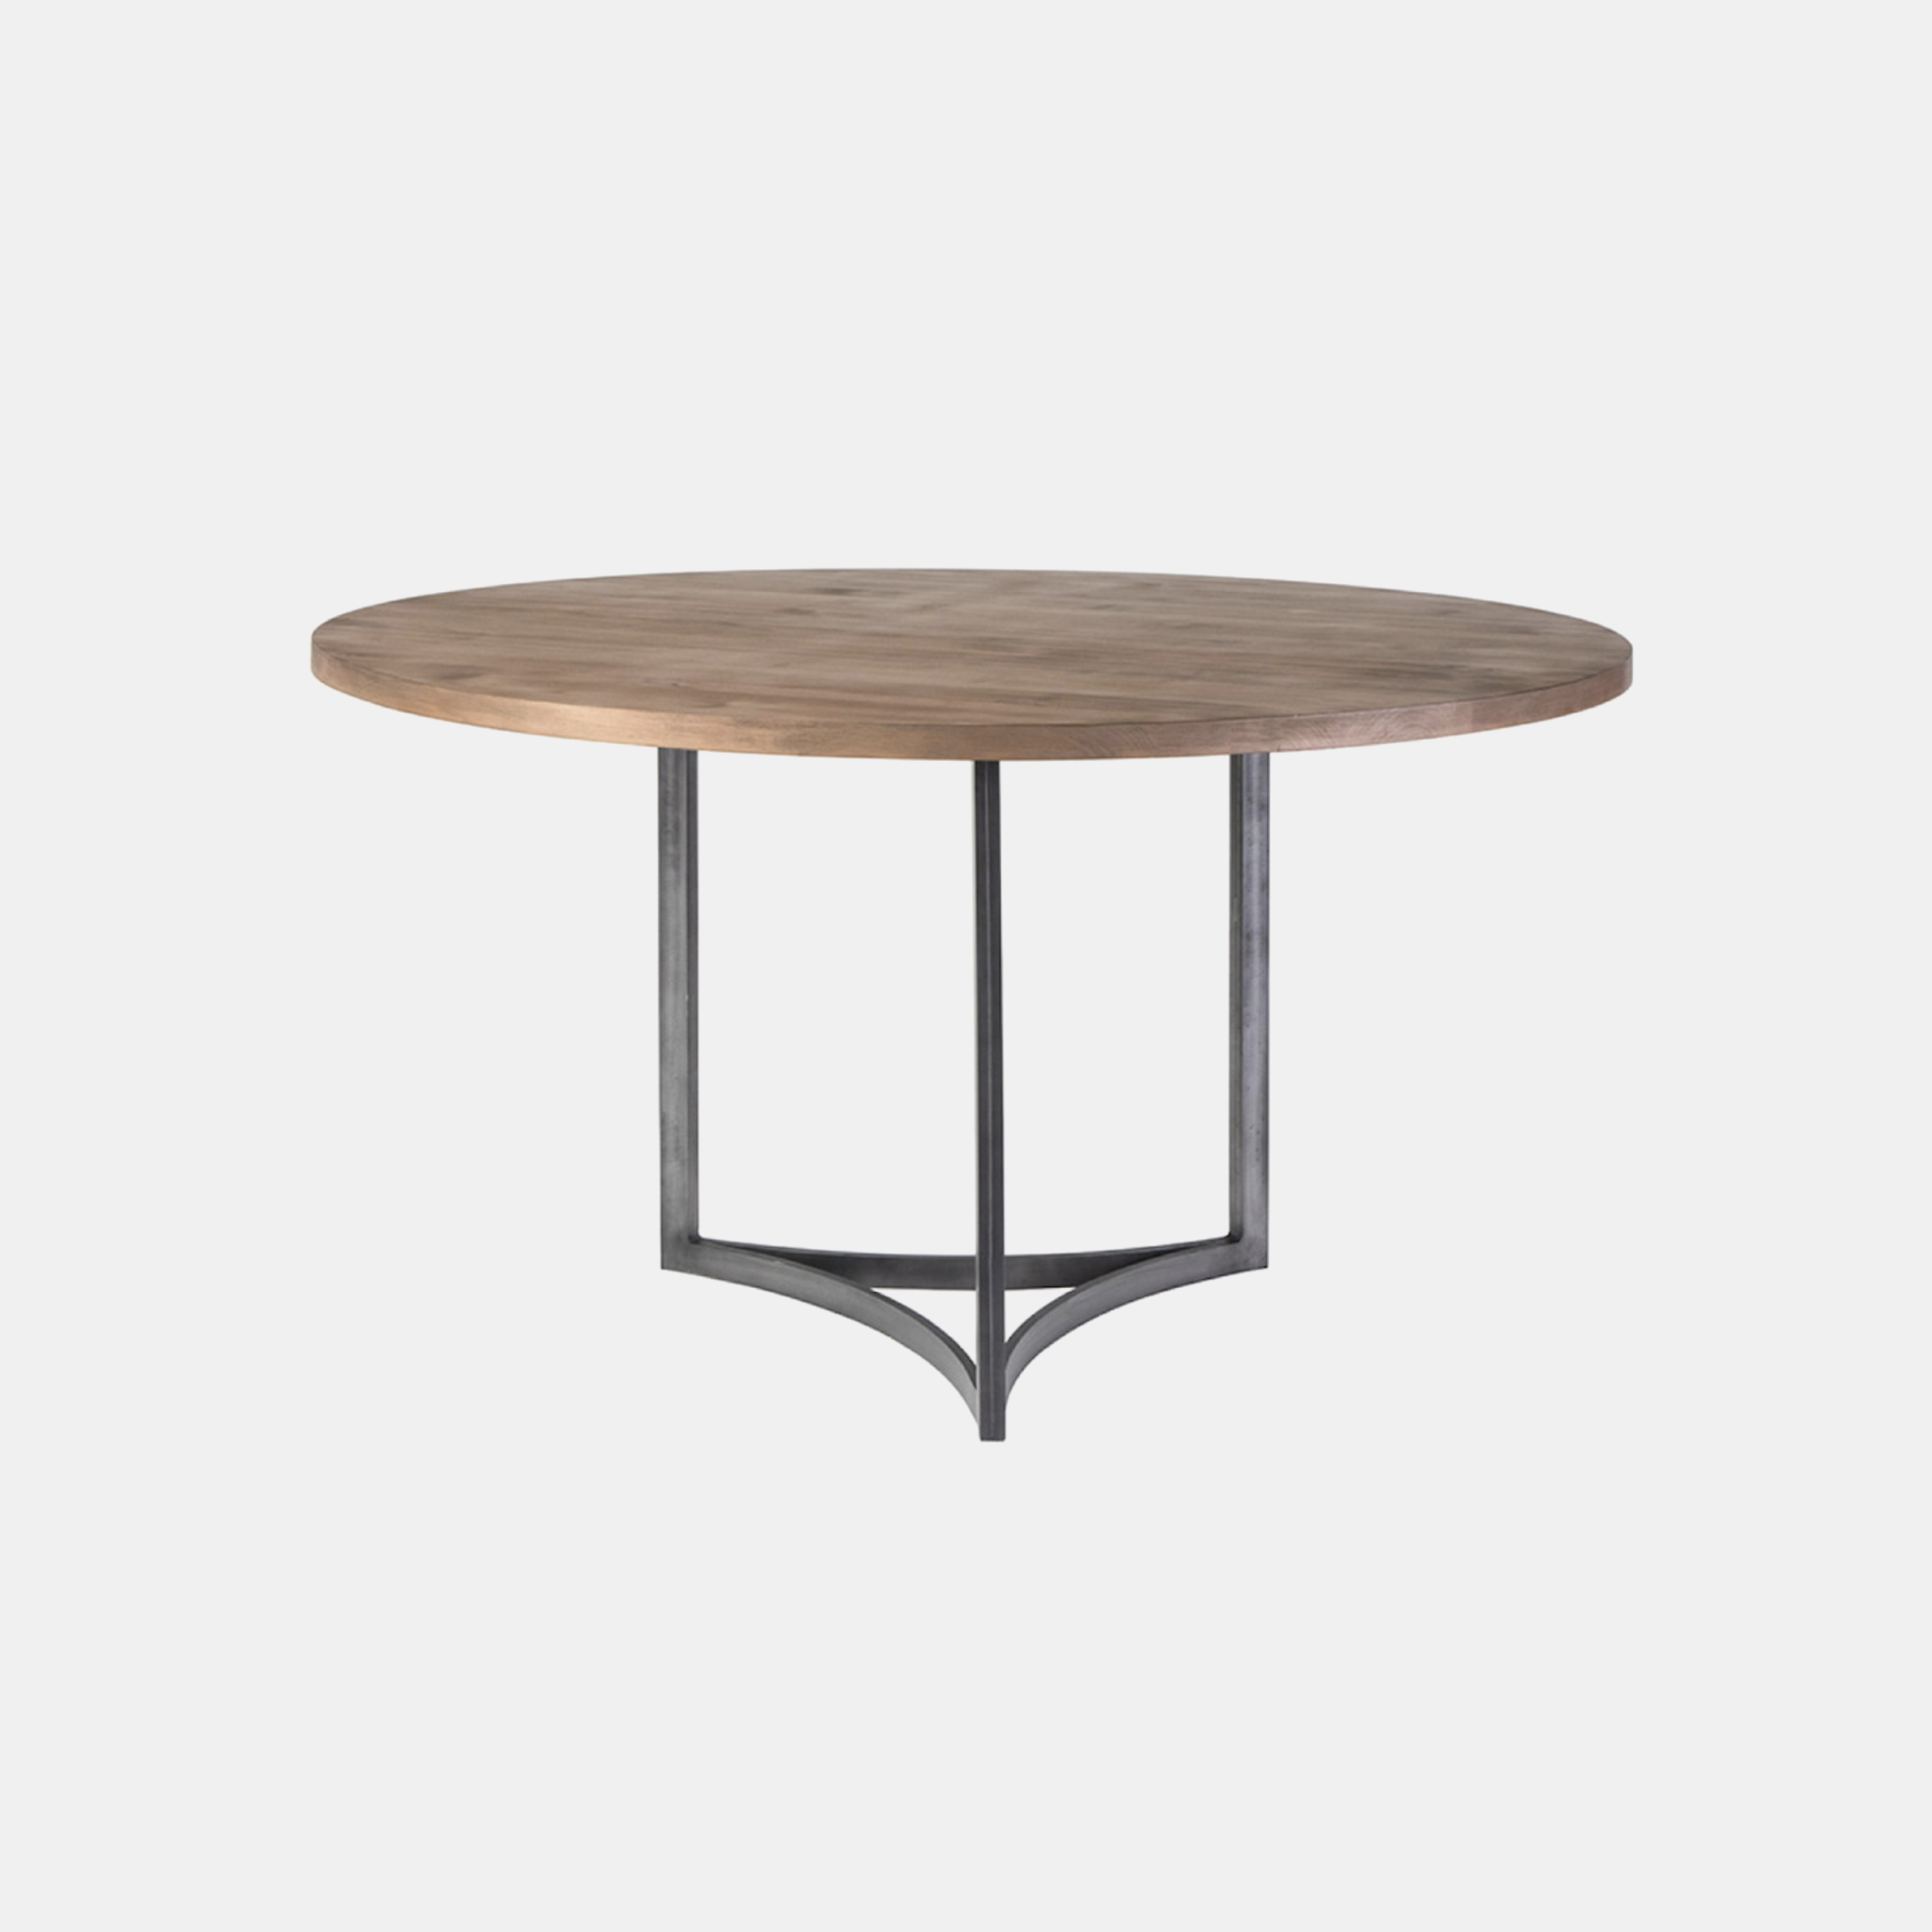 """Manhattan Dining Table  48"""", 54"""" or 60"""" round x 30.5""""h Available in several top and base finishes. Also available as oval and rectangular dining tables, coffee table, and desk. SKU9863RFH"""